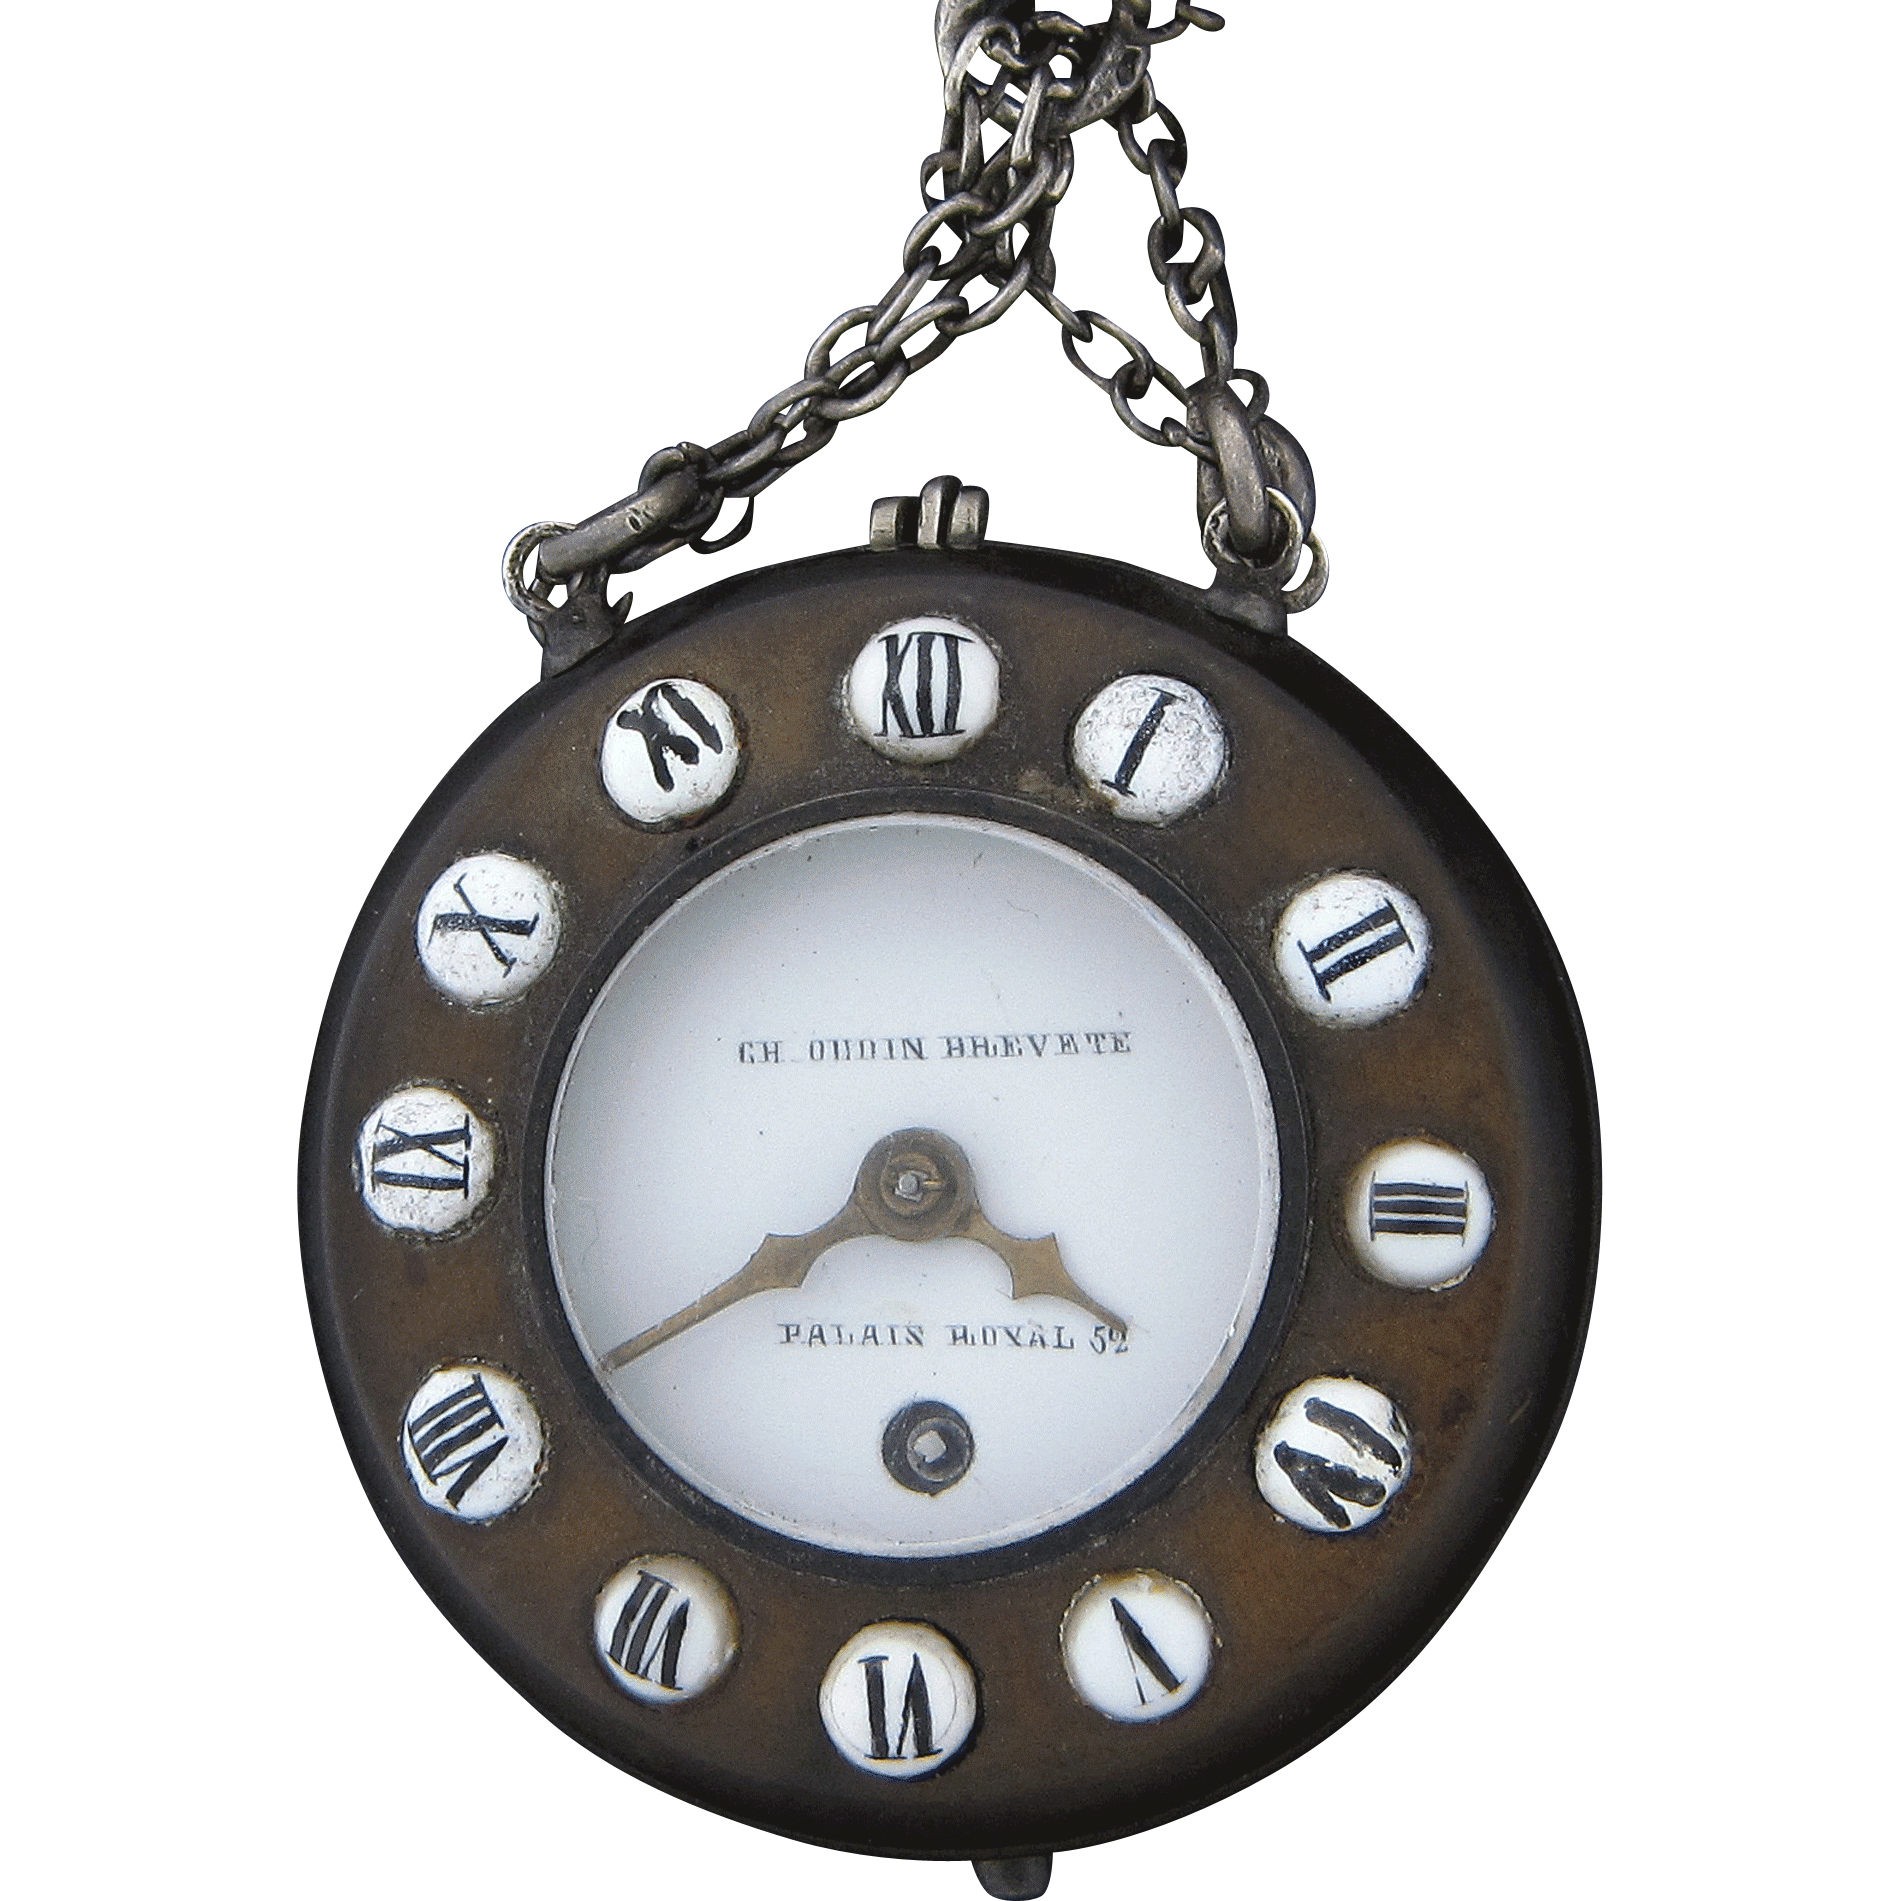 French Chatelaine Type Pocket Watch by Charles Oudin